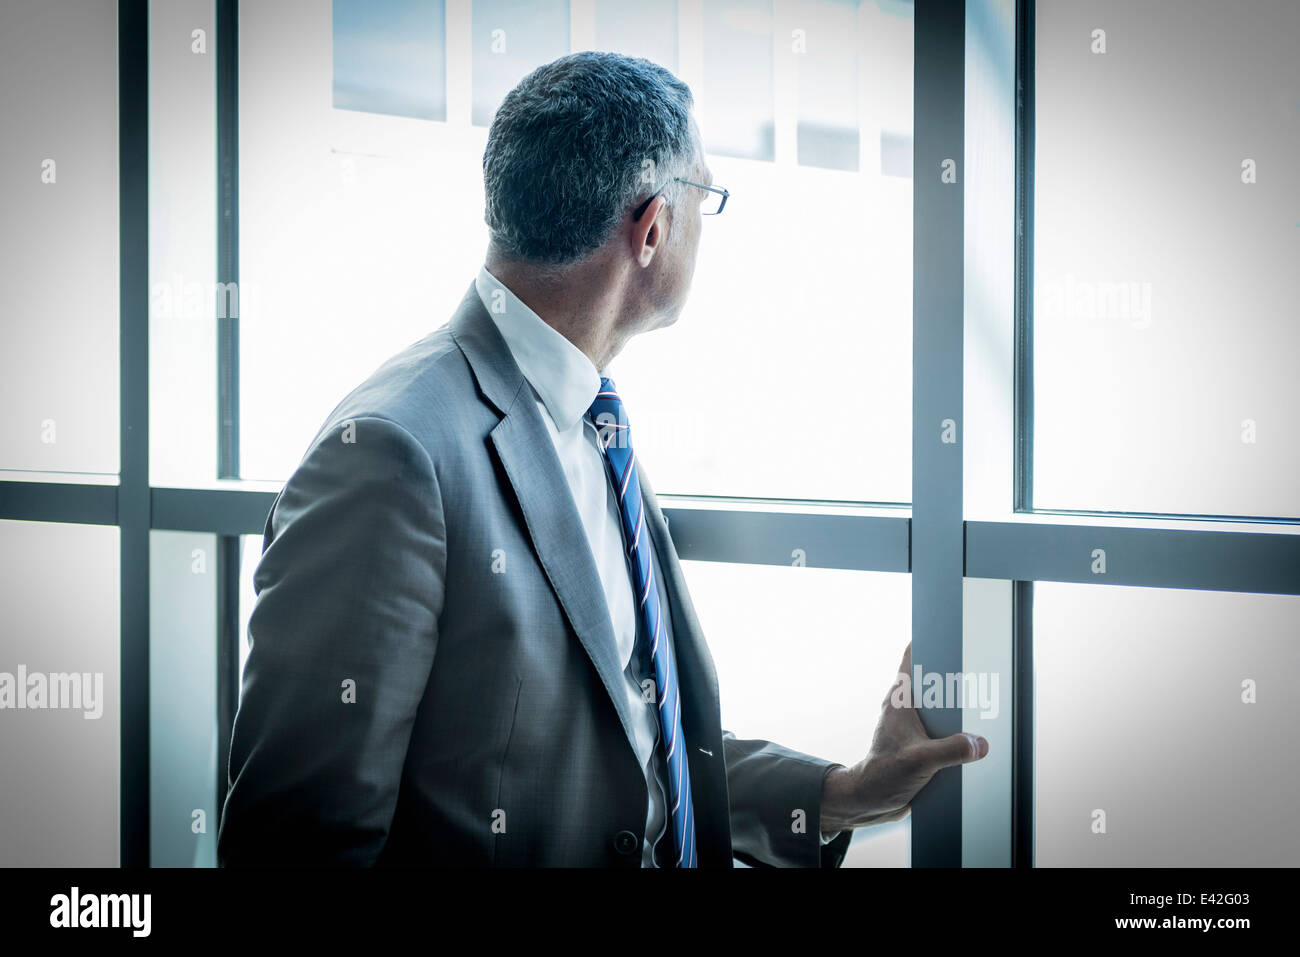 Businessman looking out through glass wall - Stock Image